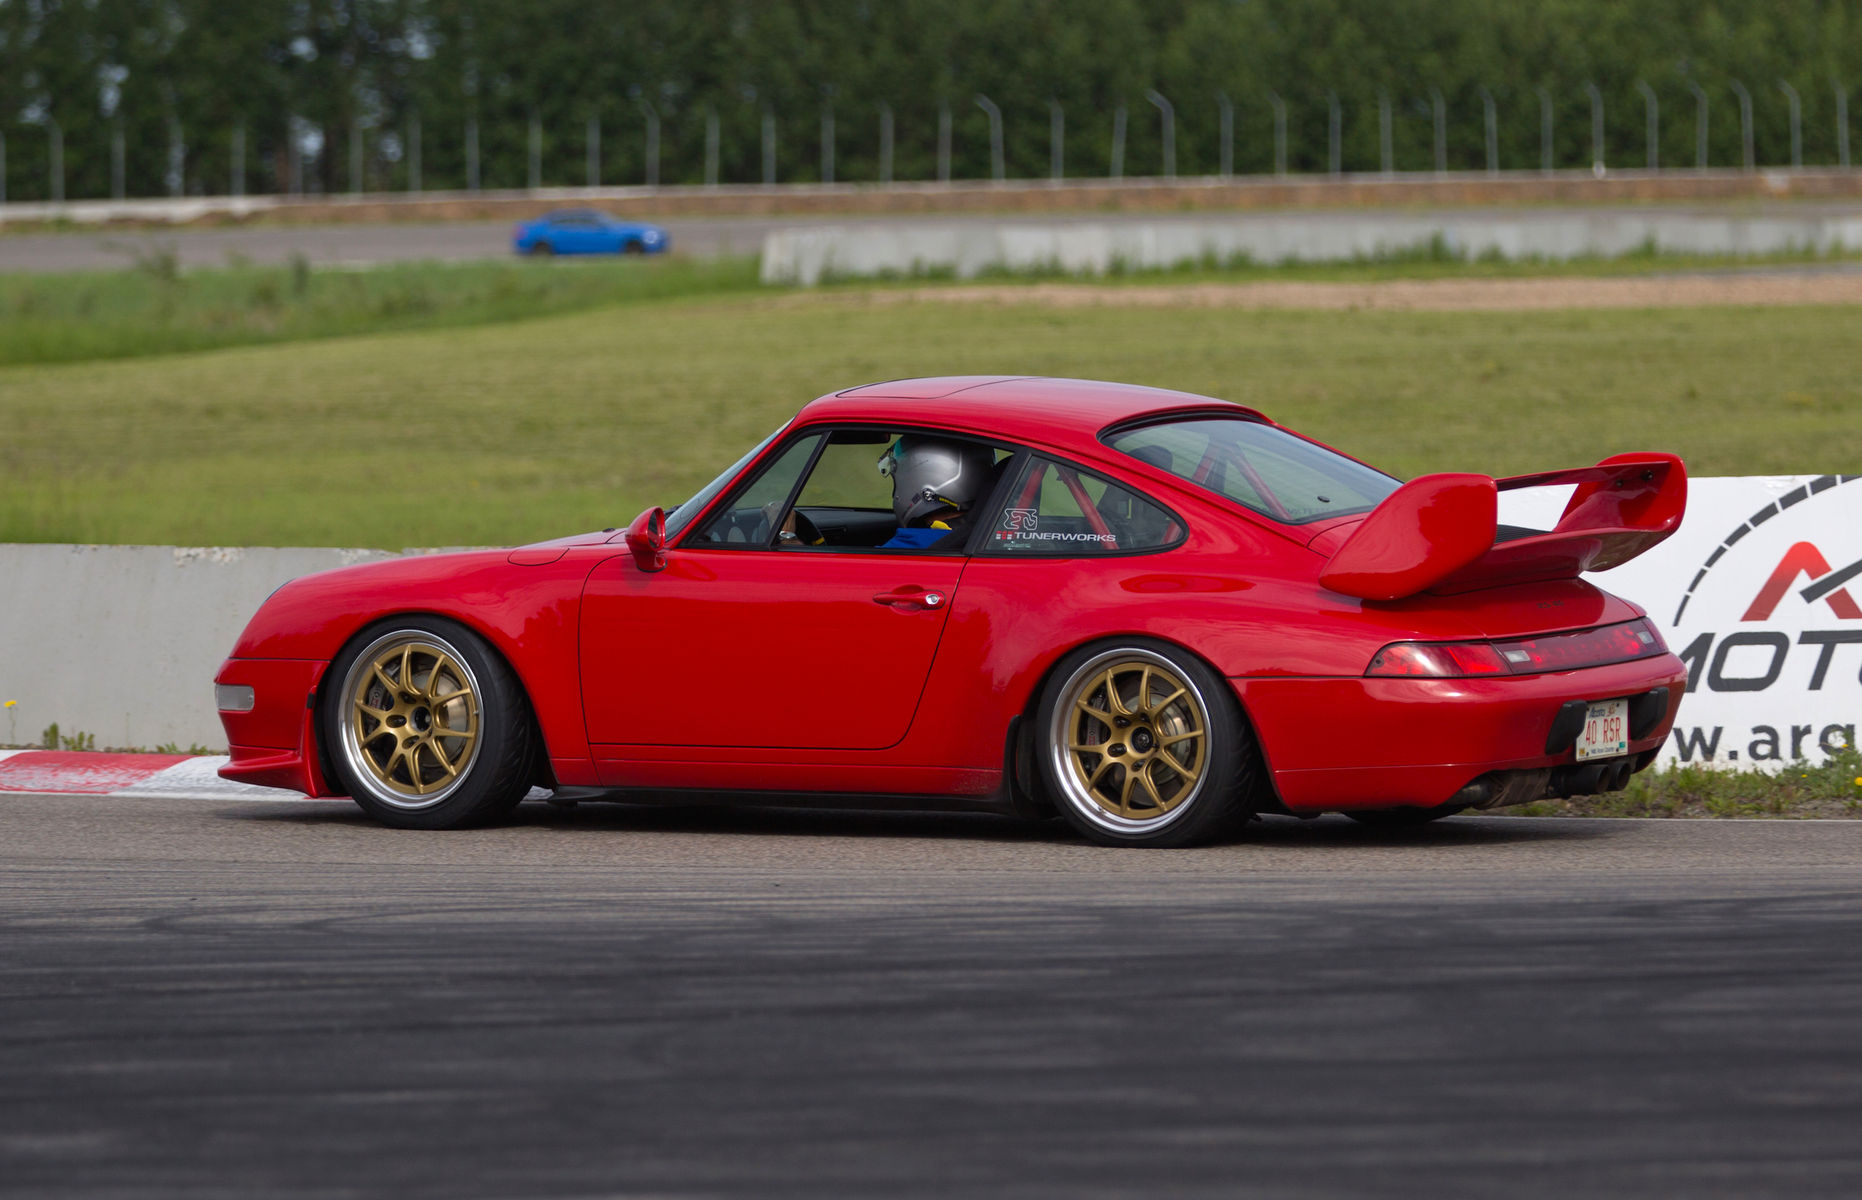 1996 Porsche 911 | Steven Tory's Porsche 993 RS 4.0 Tribute on Forgeline GA3R Wheels